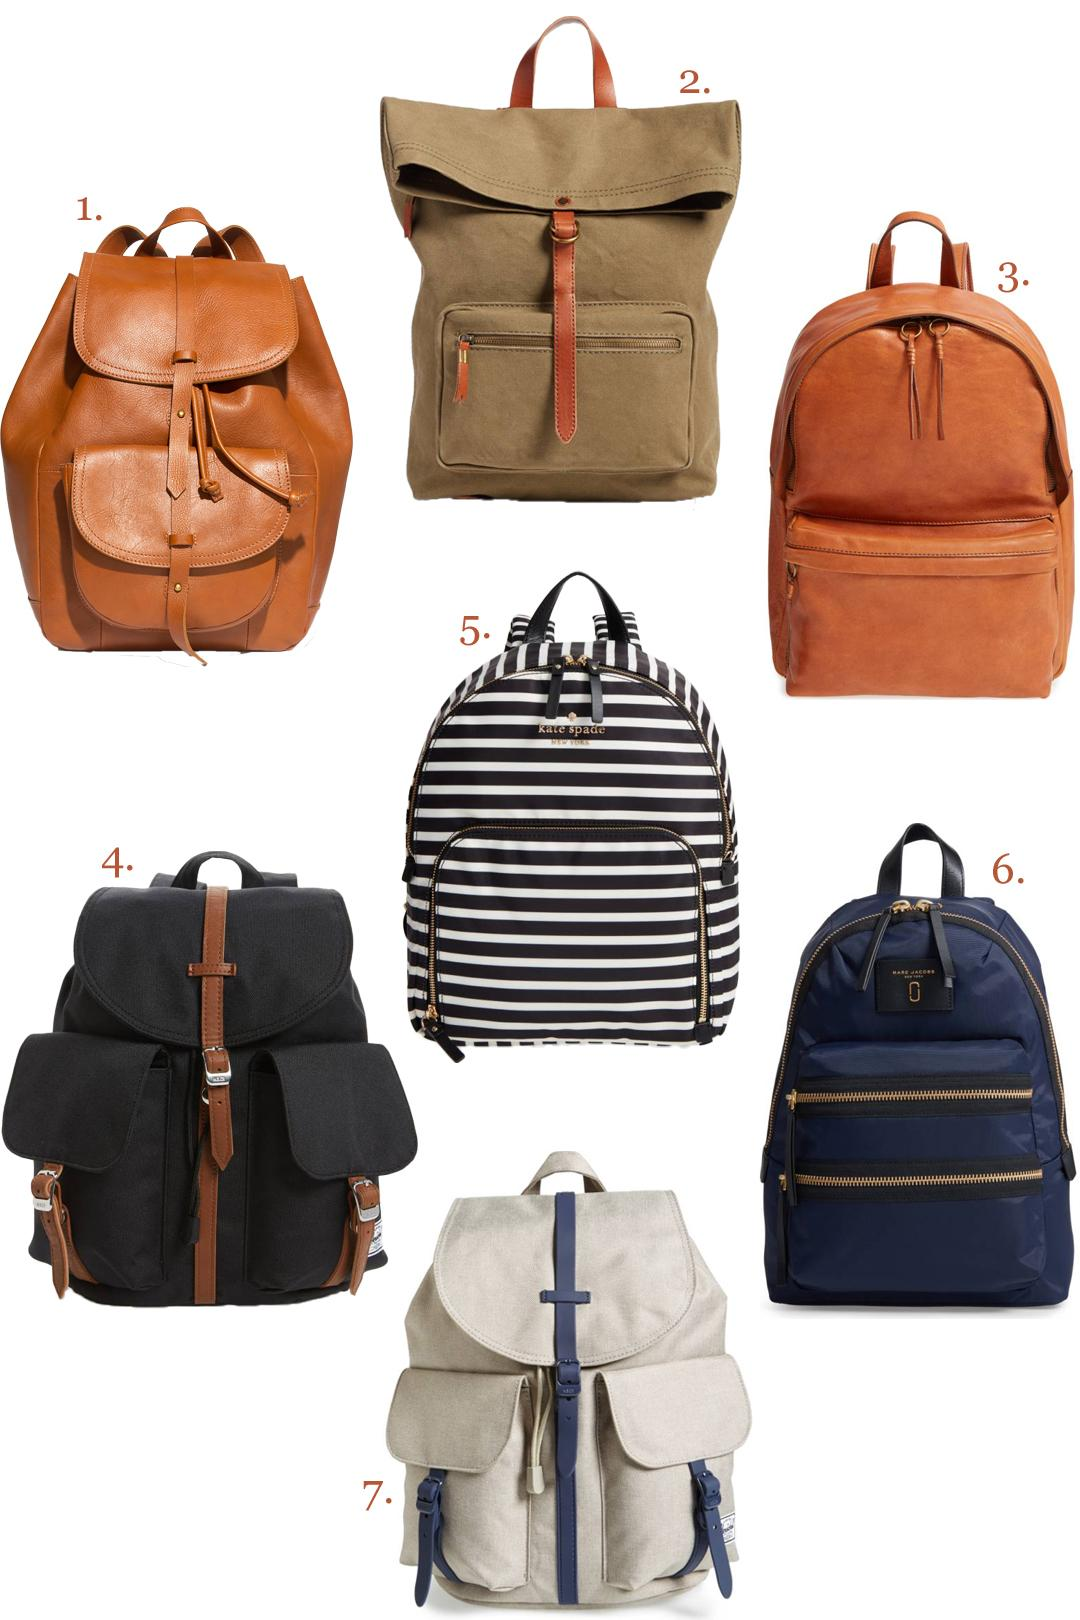 Cool Back-to-School Backpacks